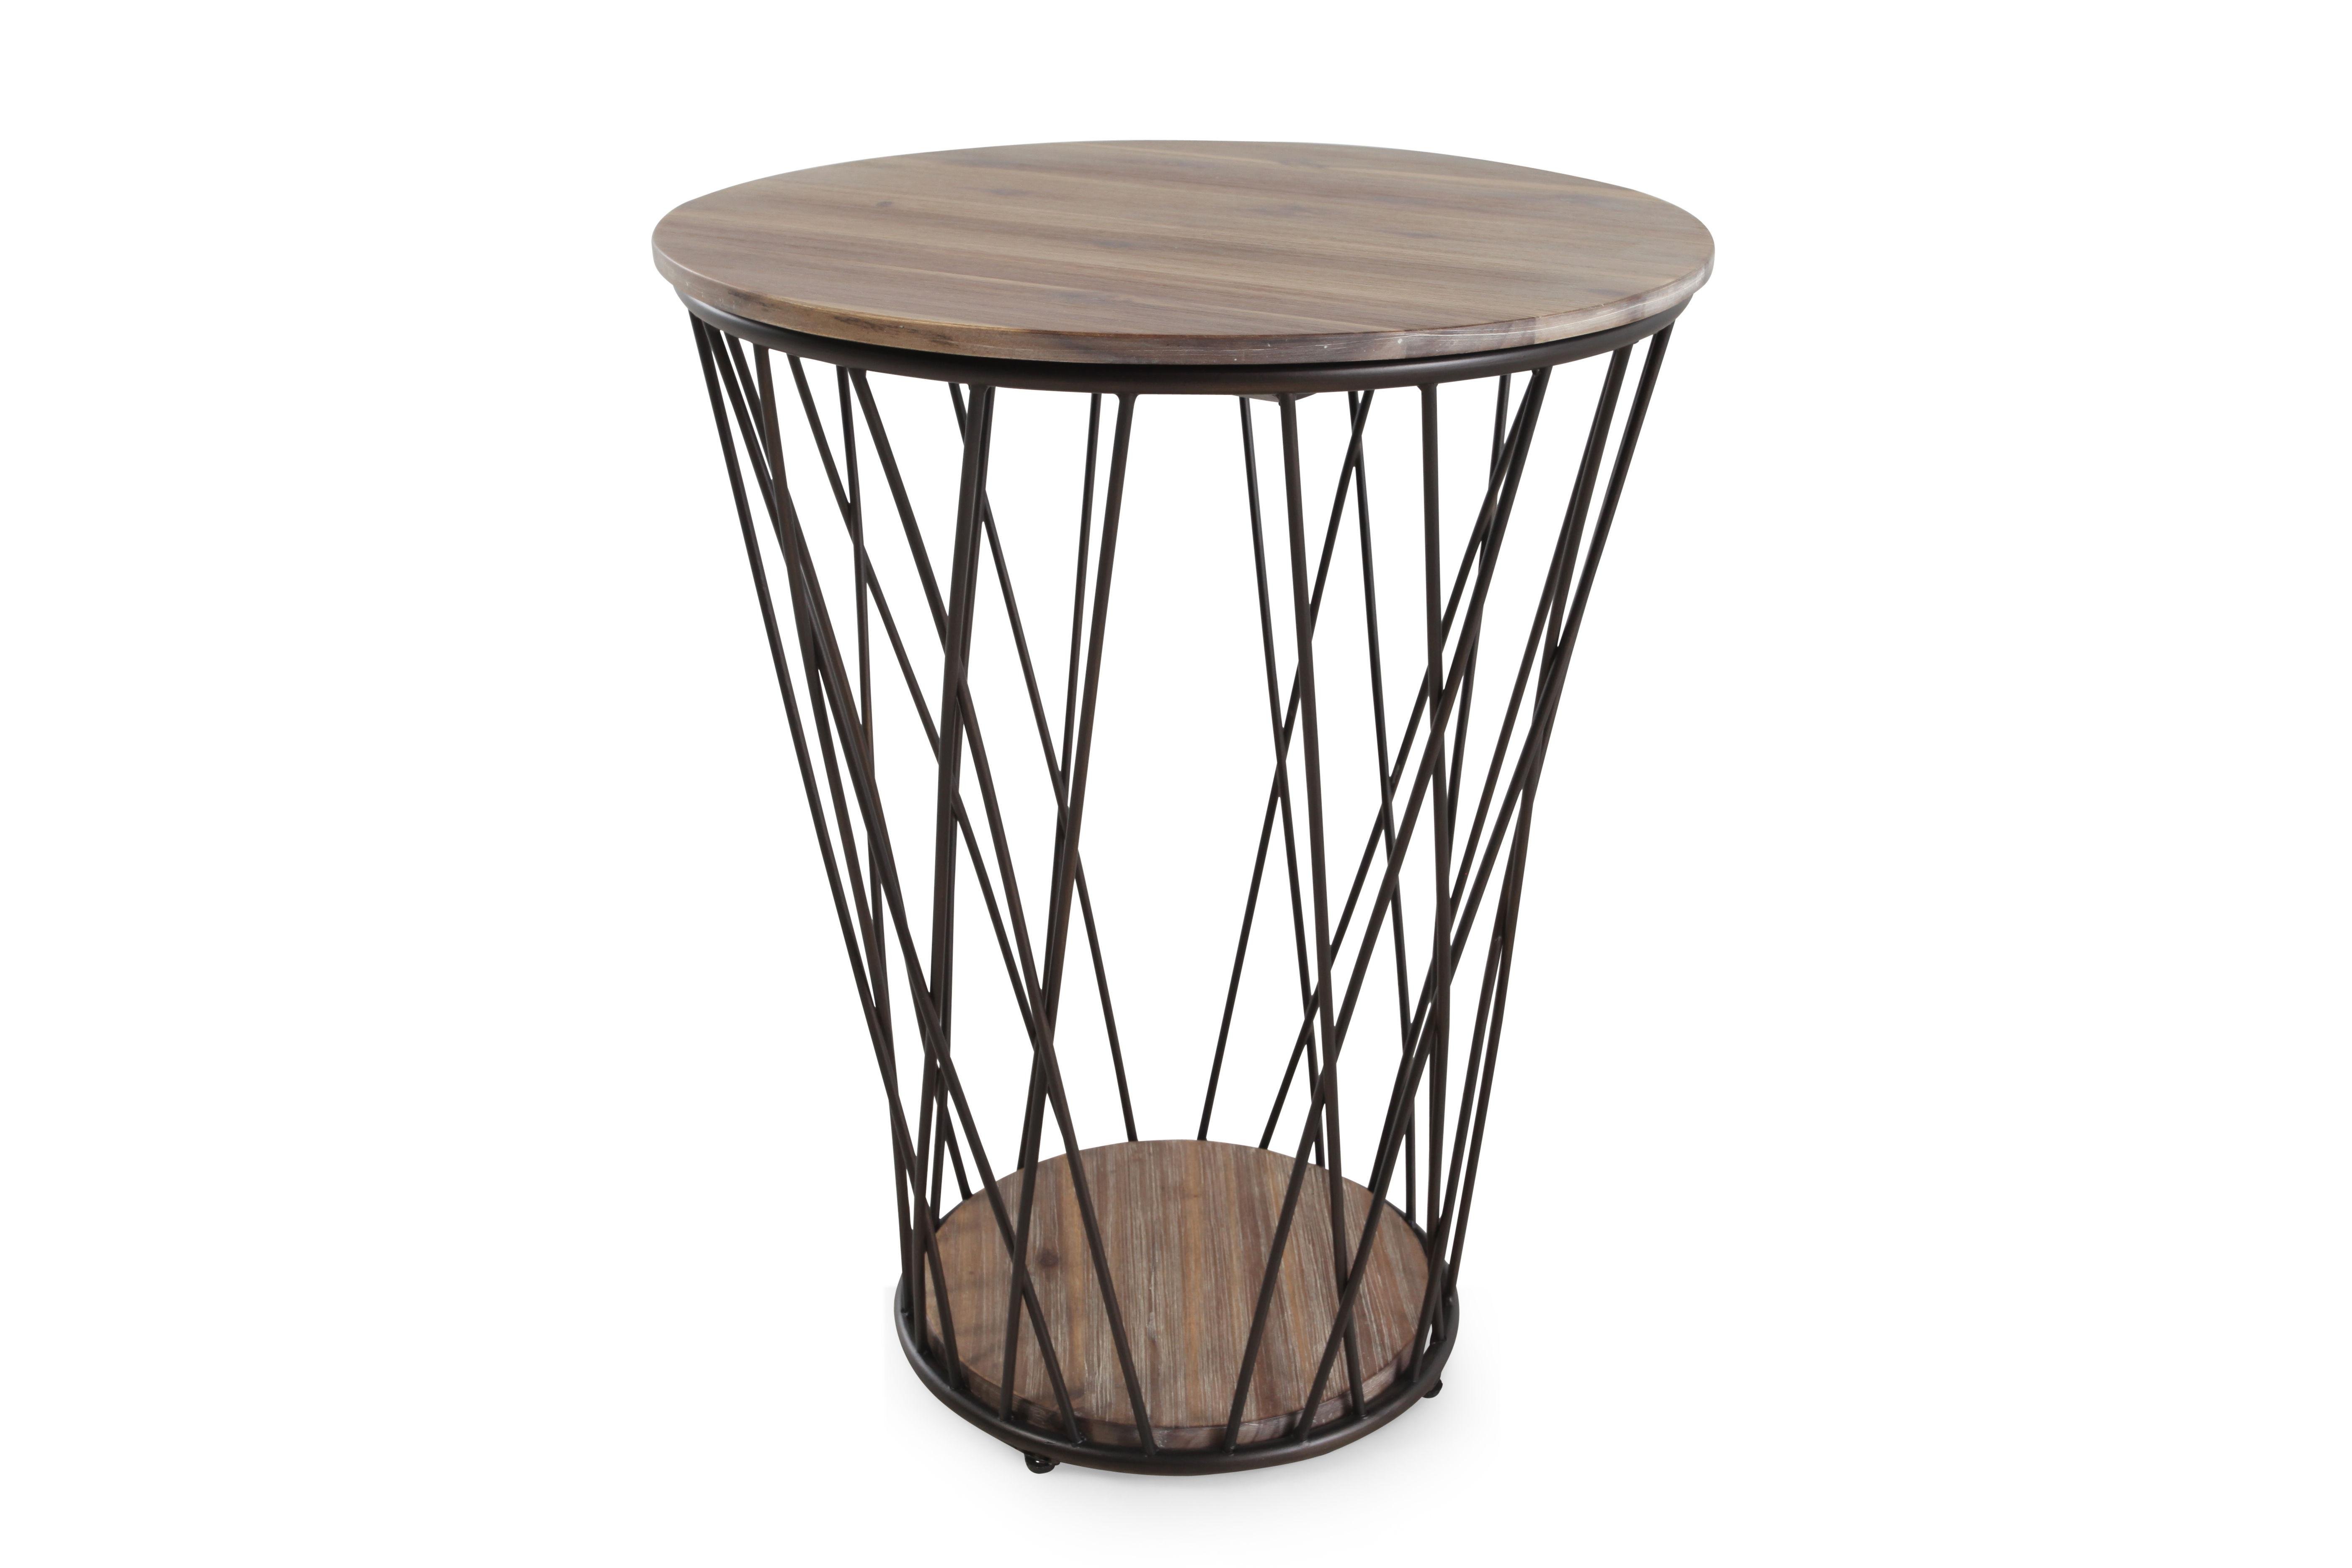 remarkable small round wood accent table square oak tripod twist drum oval mango below unfinished natur pressed rustic twisted tables bengal lani target wooden five faux metal